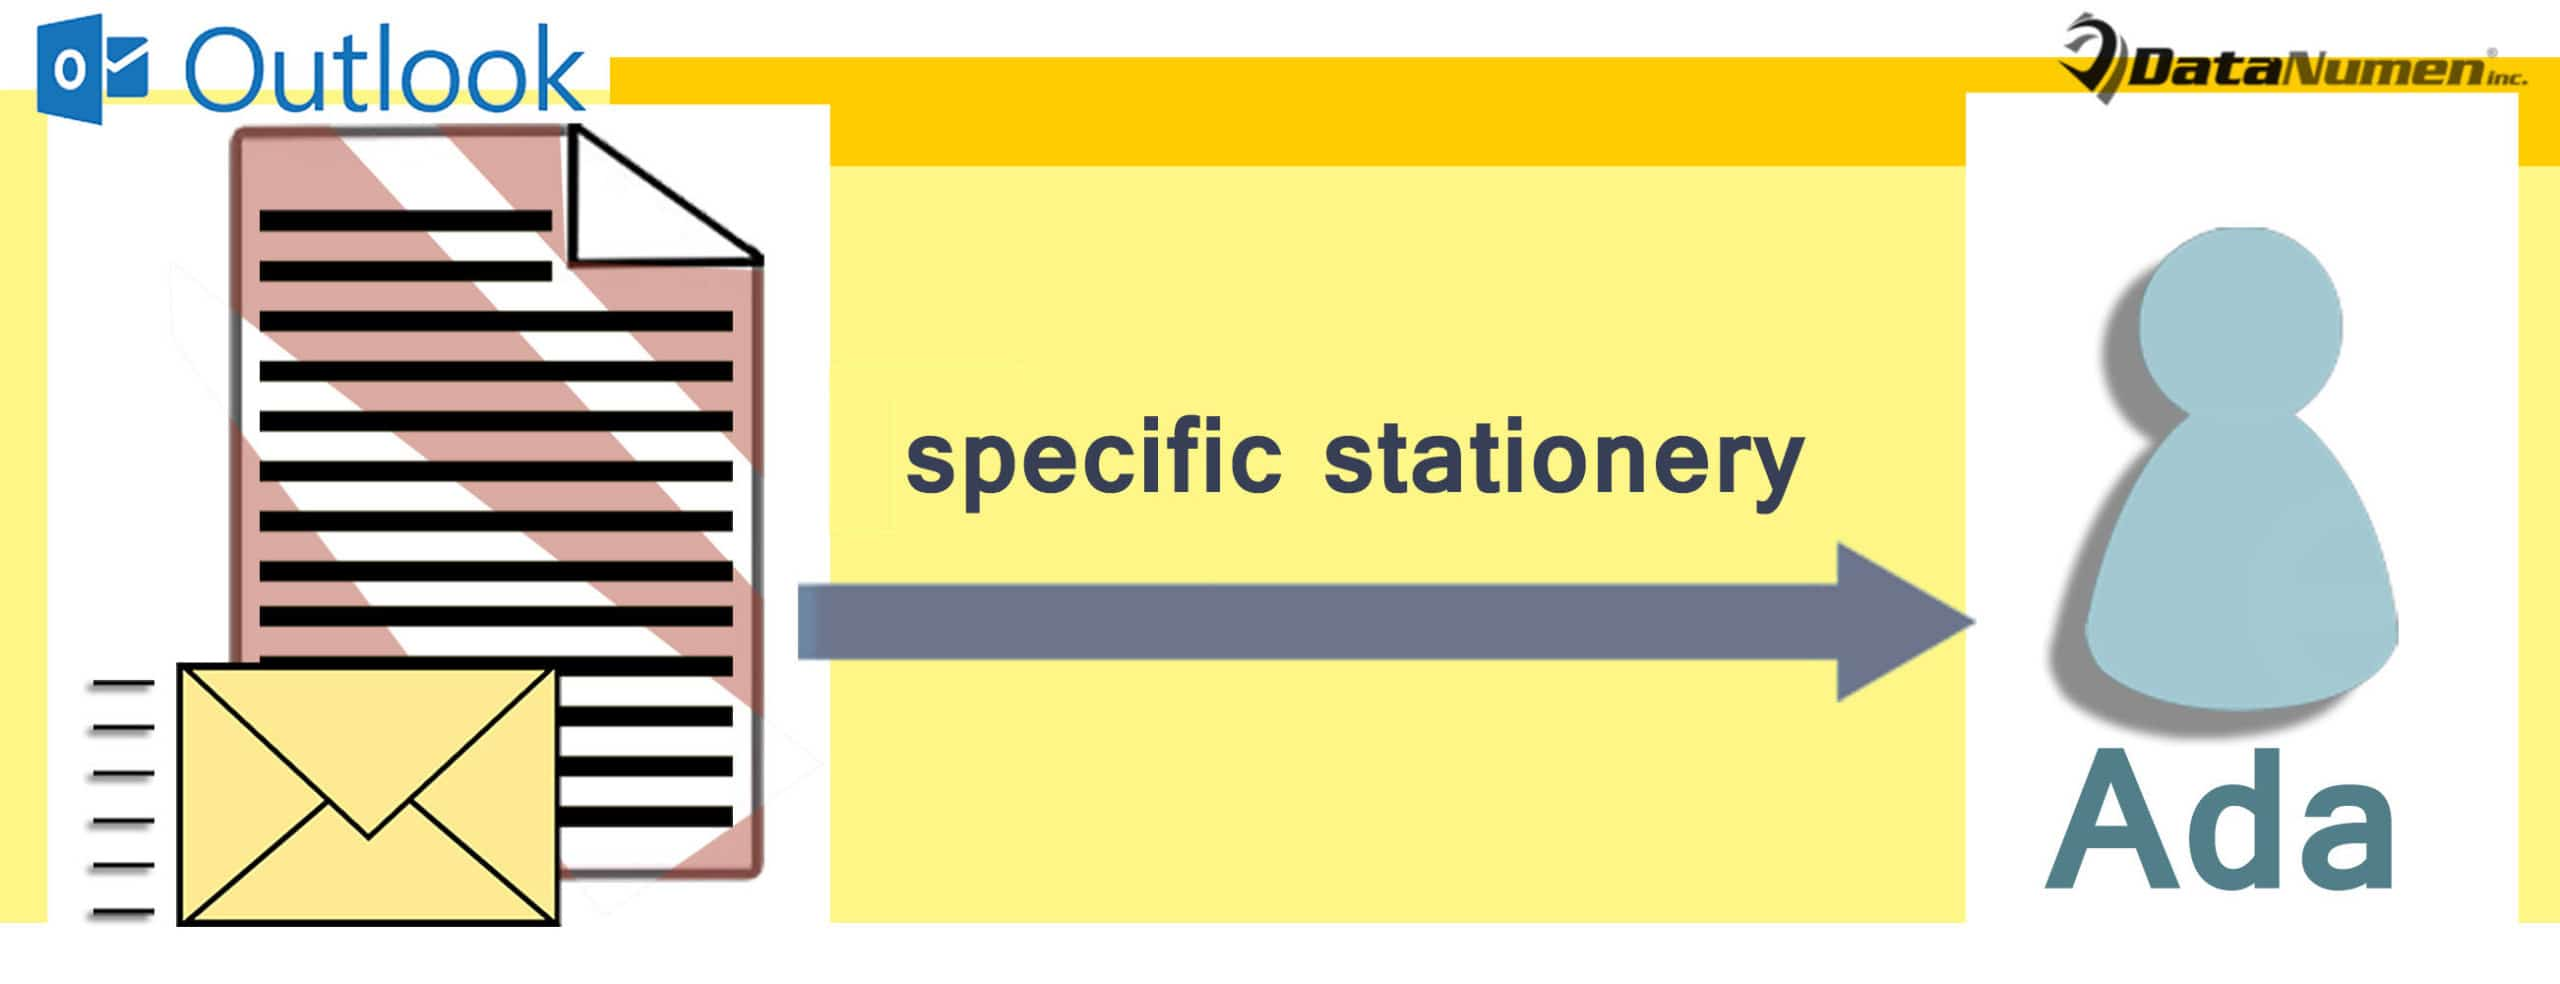 Auto Apply a Specific Stationery when Sending Emails to a Specific Person in Outlook